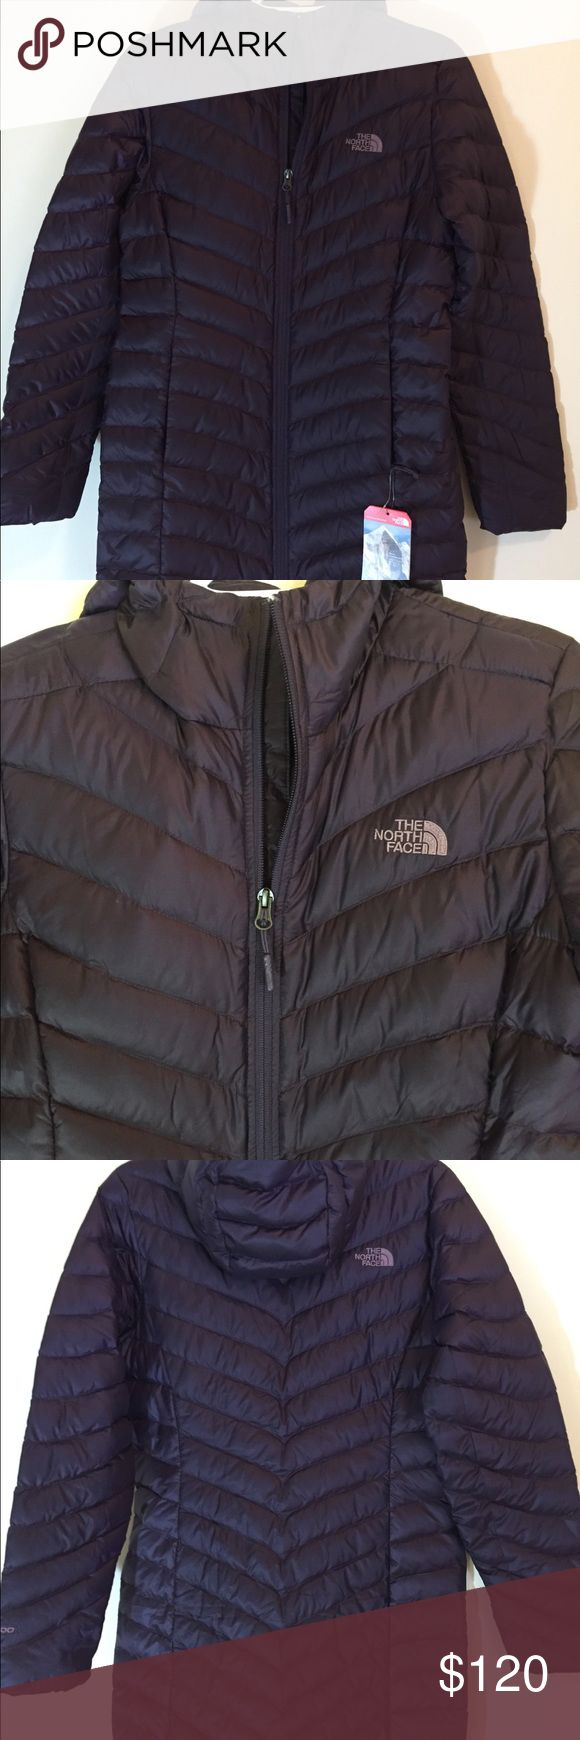 """The North Face Women's Down Parka Jacket Medium The North Face Women's Down Jacket parka. Size medium. Length is 33"""". Chest measures 19"""" across lying flat. Shell is polyester. Insulation is goose down and feathers. New with tags The North Face Jackets & Coats"""